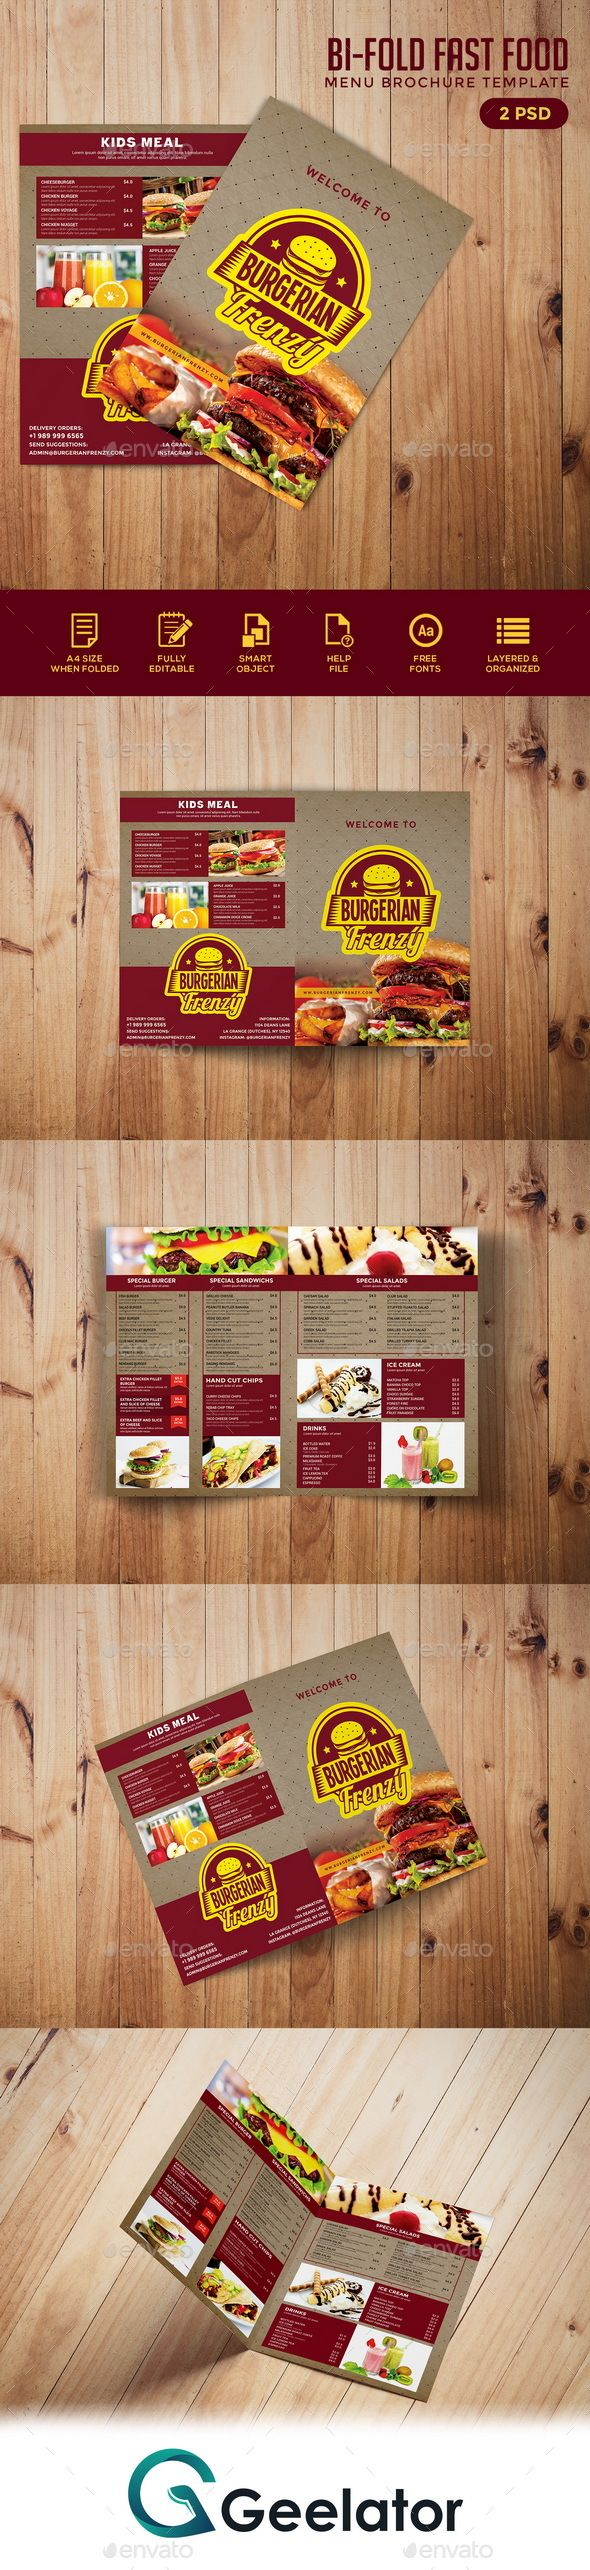 Bifold Fast Food Menu Brochure Template  Food Menu Brochure